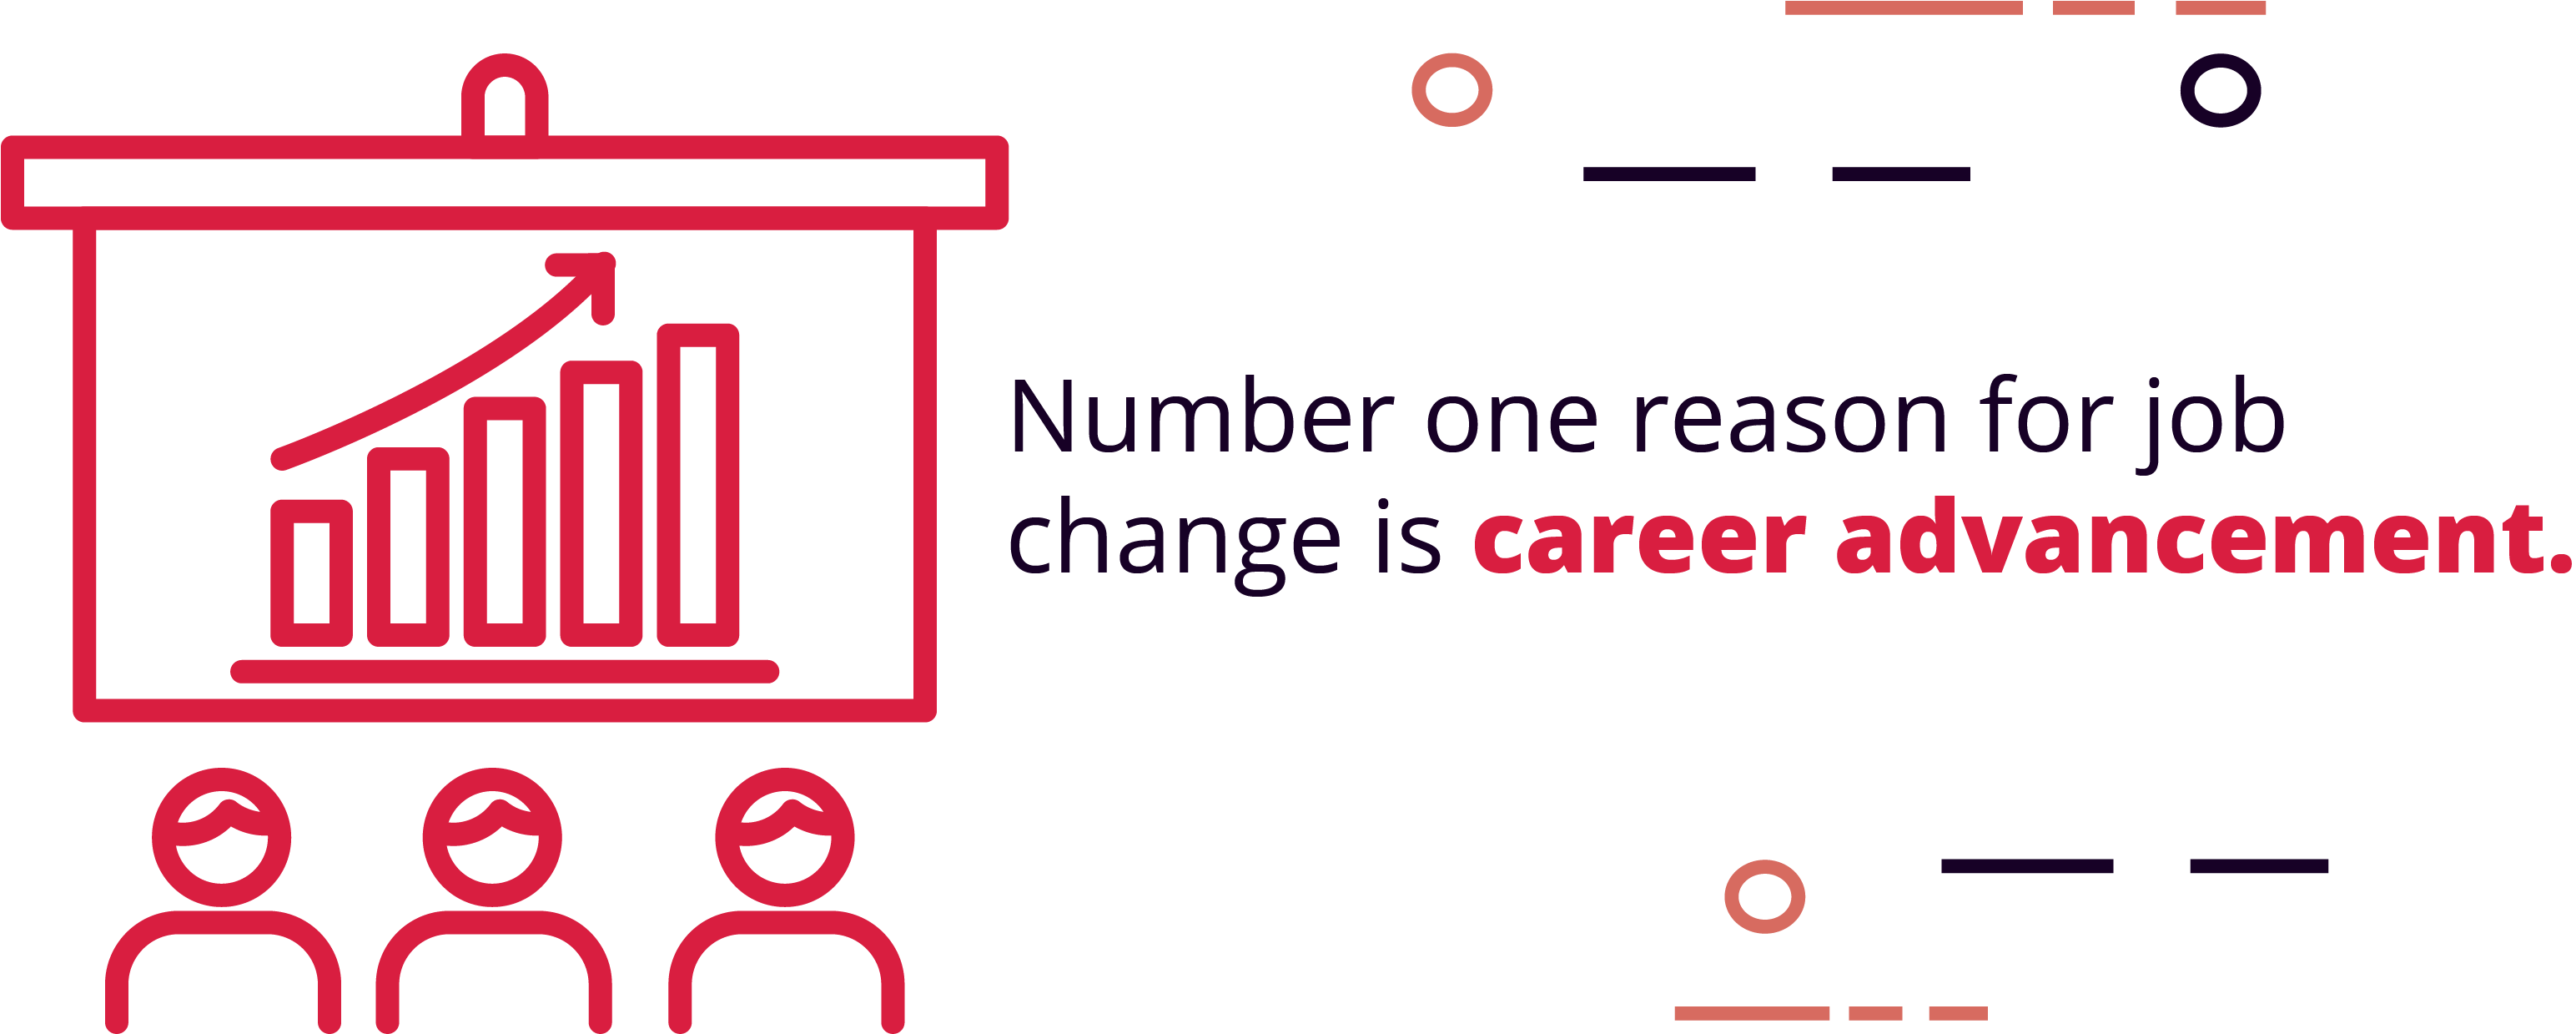 The number one reason people change jobs is for career advancement